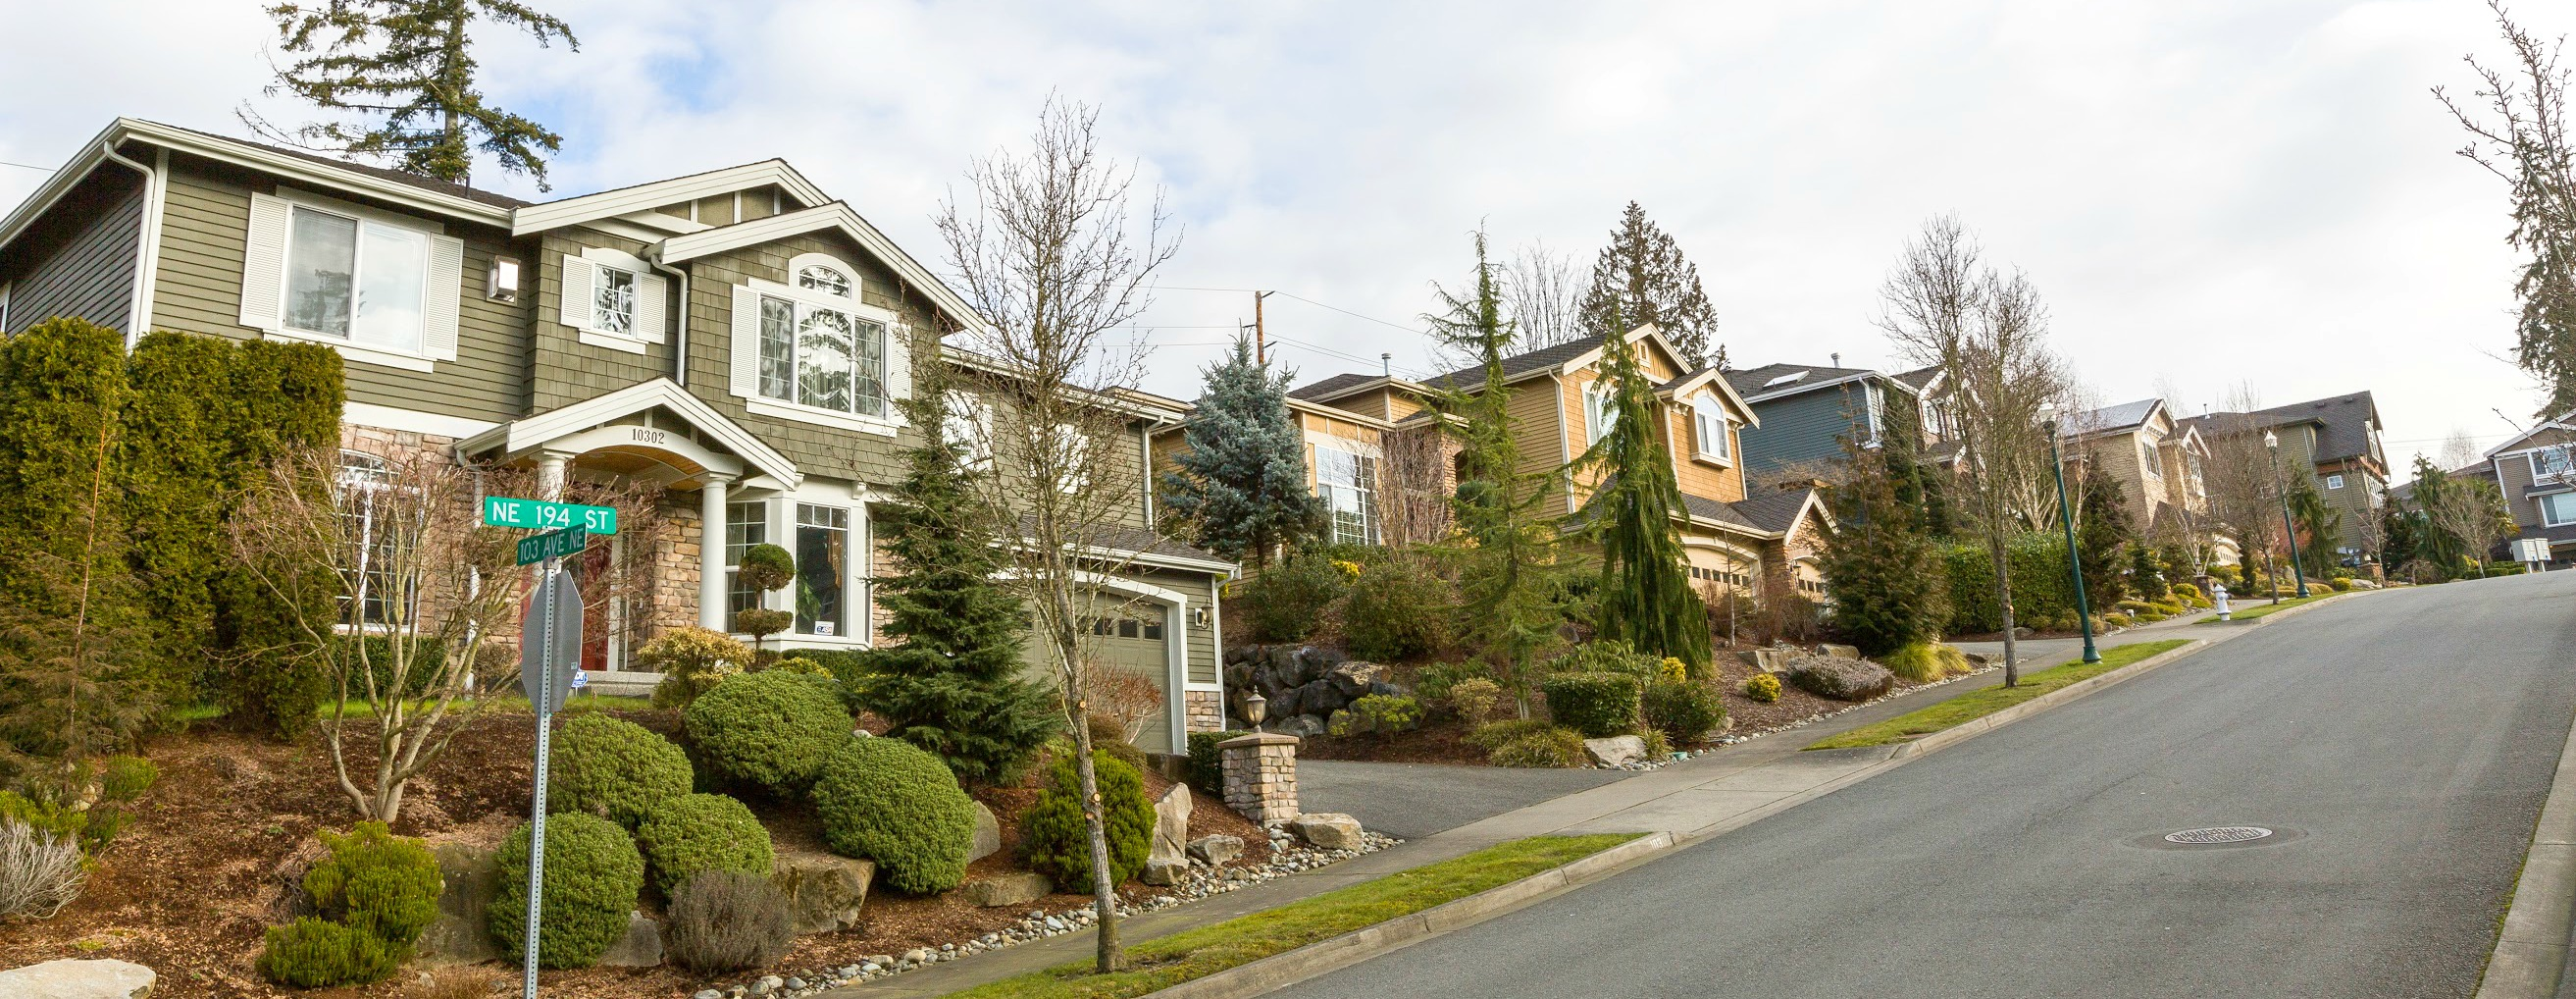 WindermereNorth_Bothell_Neighborhood2.jpg